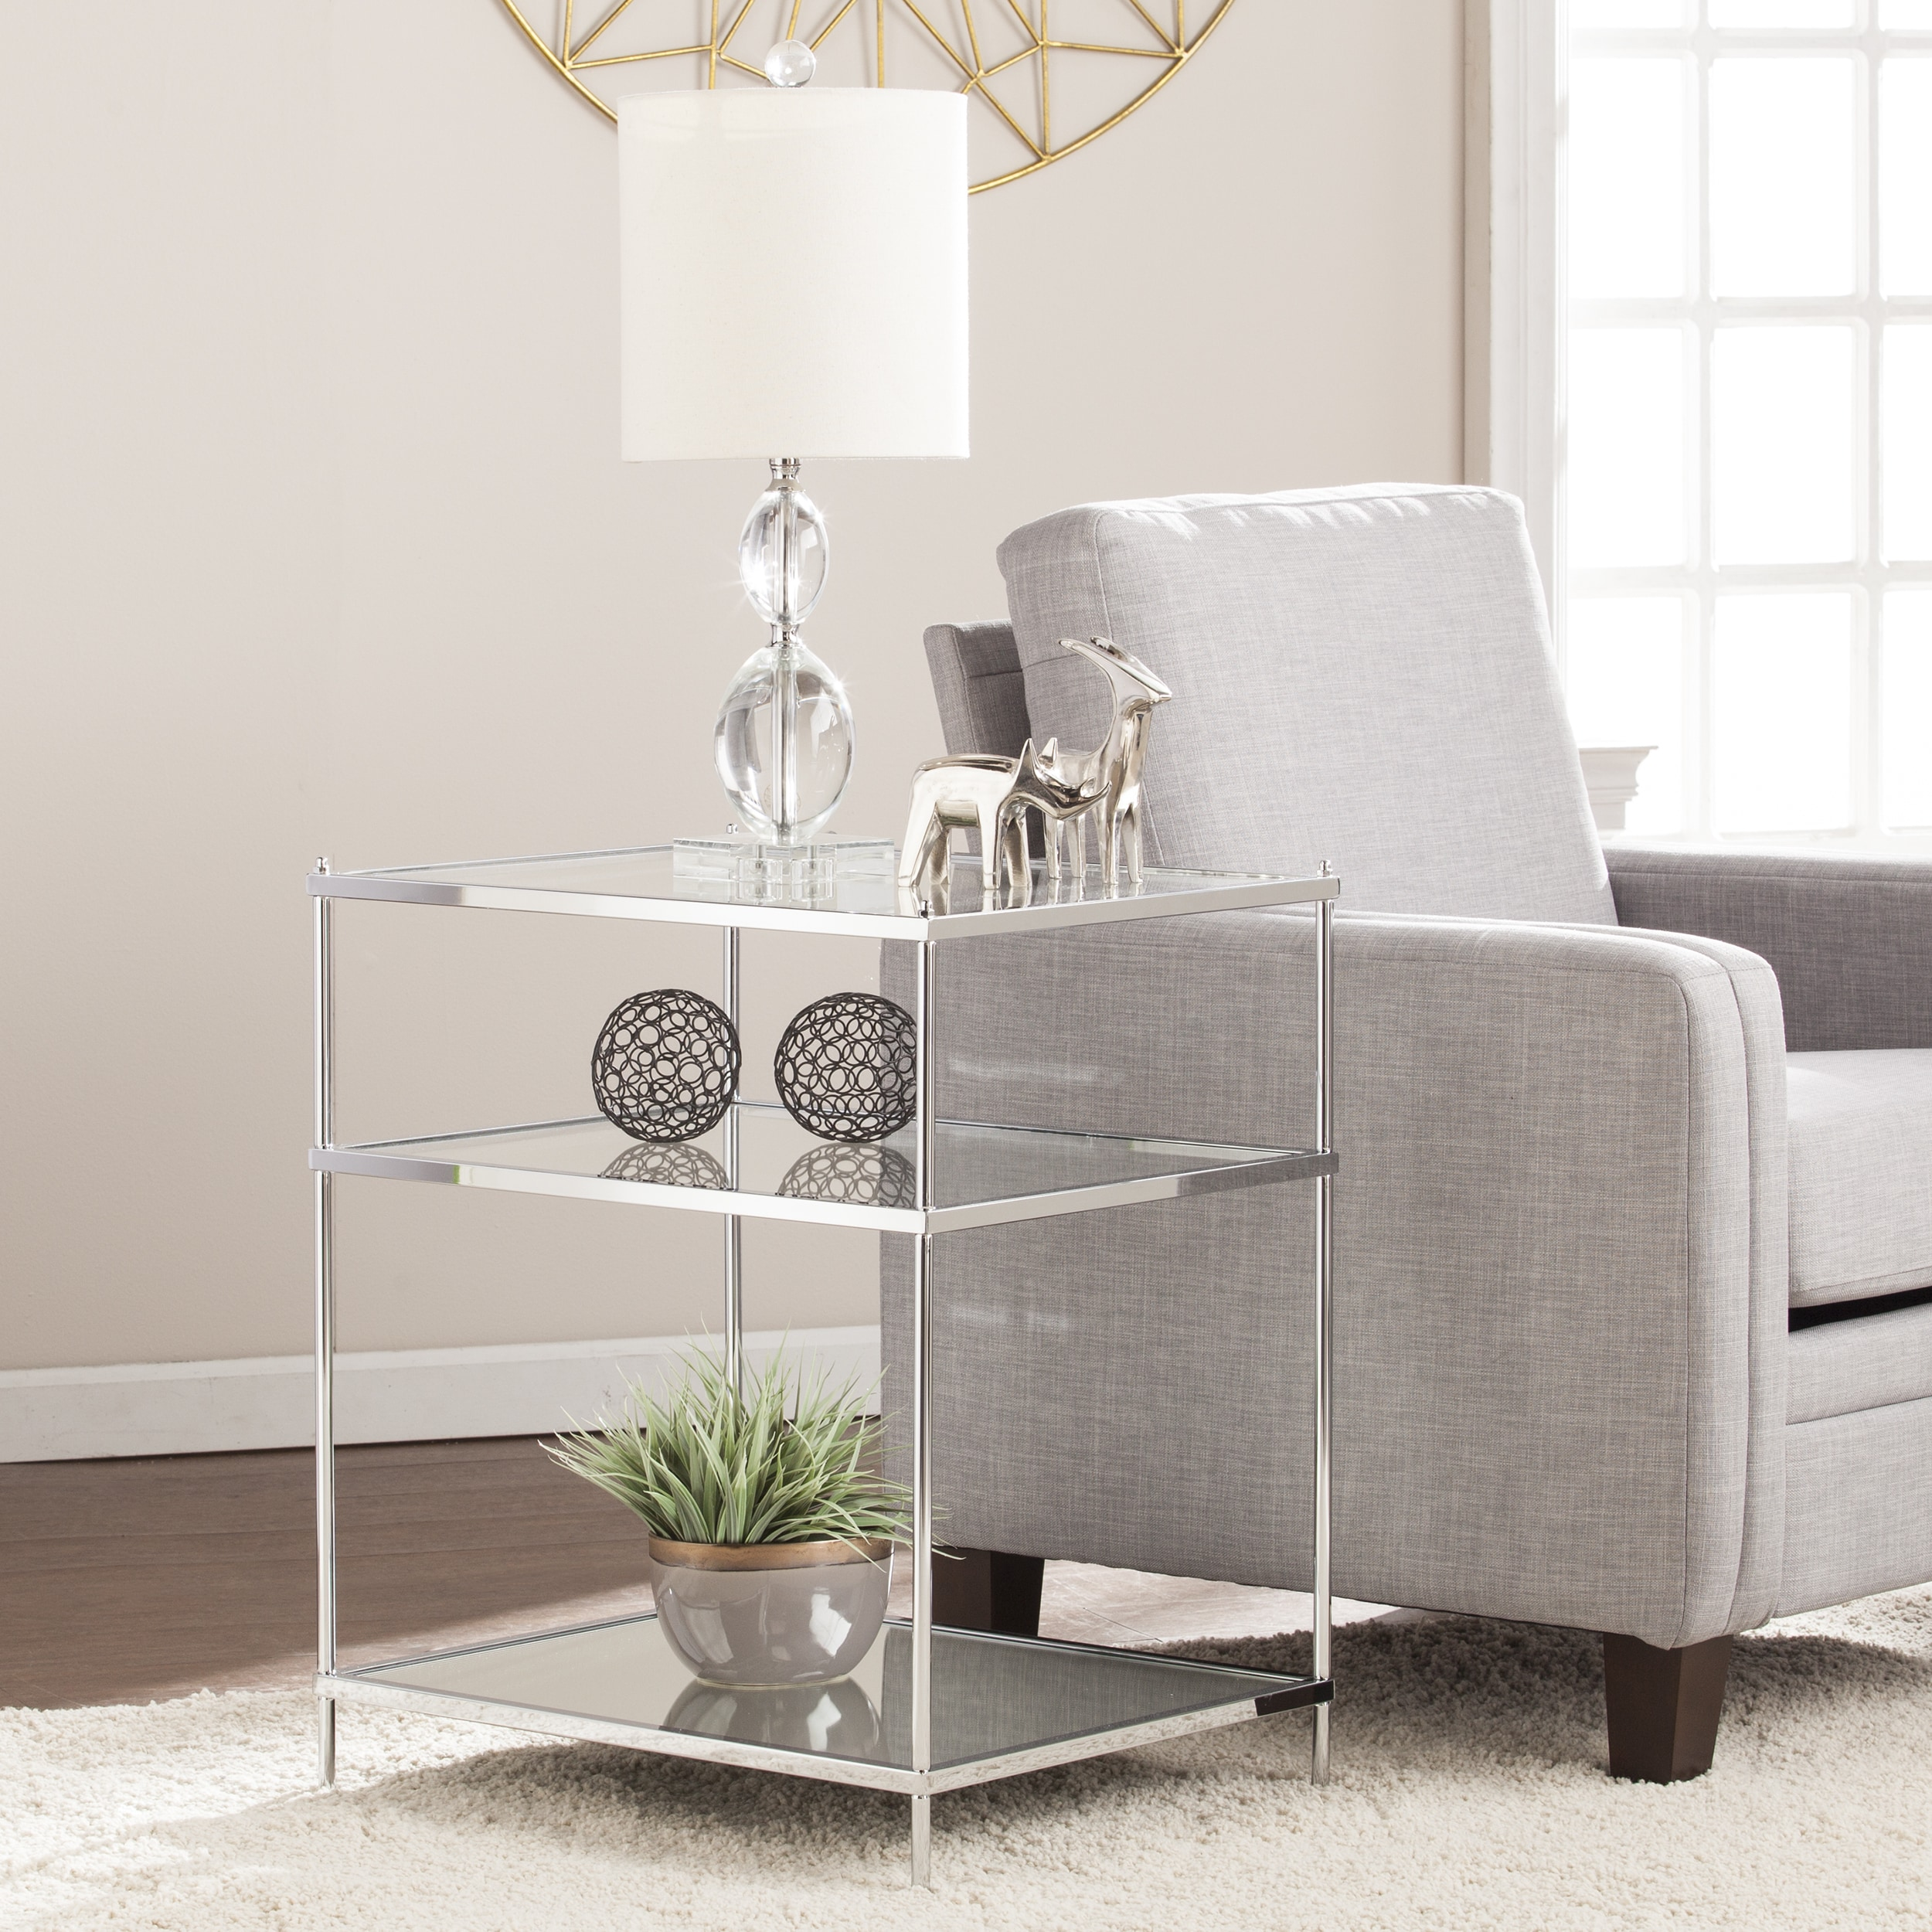 Exceptionnel Harper Blvd Knowles Glam Mirrored Side Table   Chrome   Free Shipping Today    Overstock   20931843